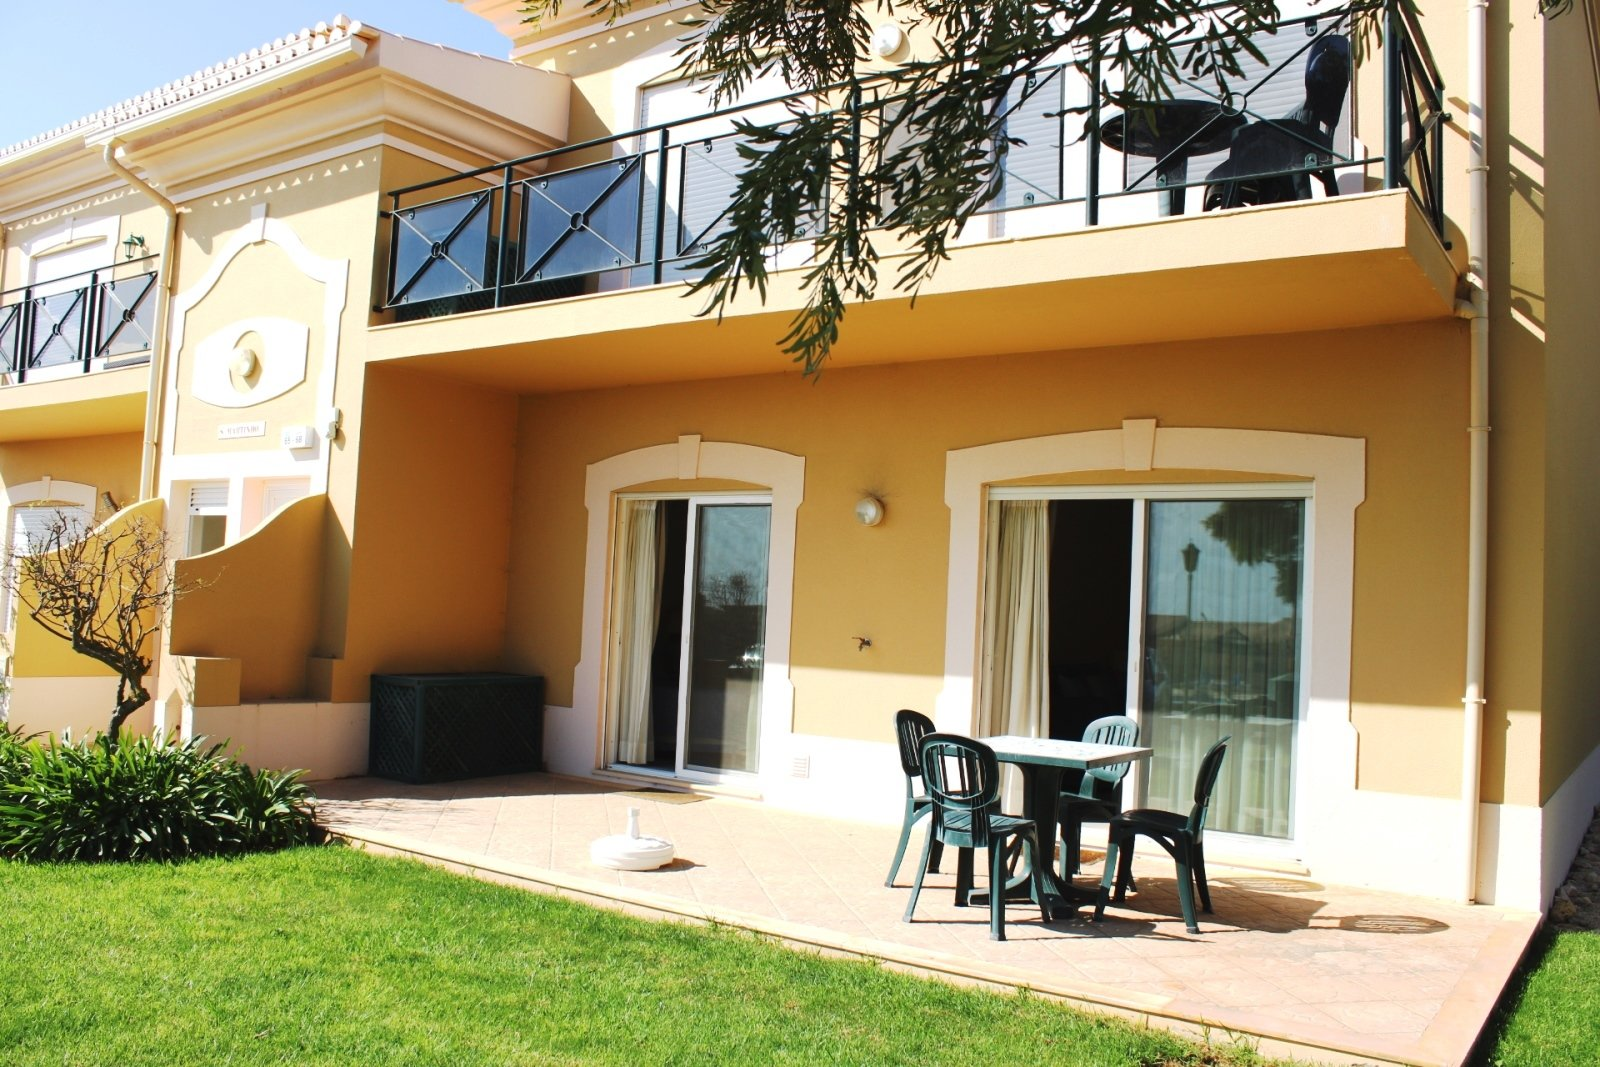 2 Bedroom Apartment Lagos, Western Algarve Ref: GA397